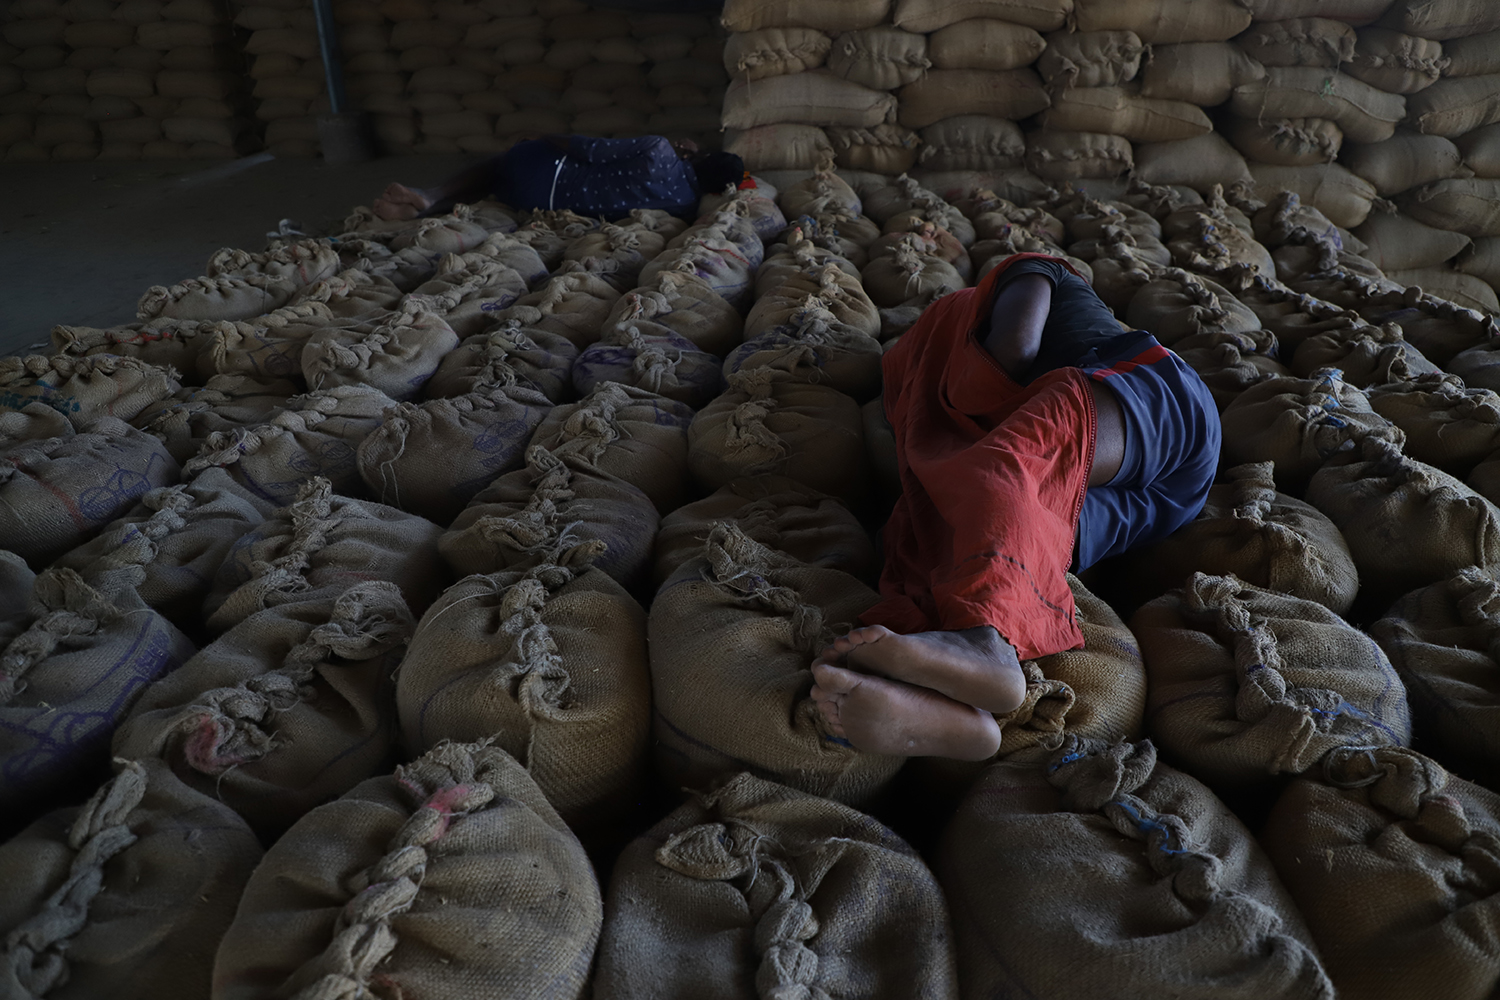 Laborers rest on bags of shelled corn at the Khanna market in Punjab on Oct. 3.